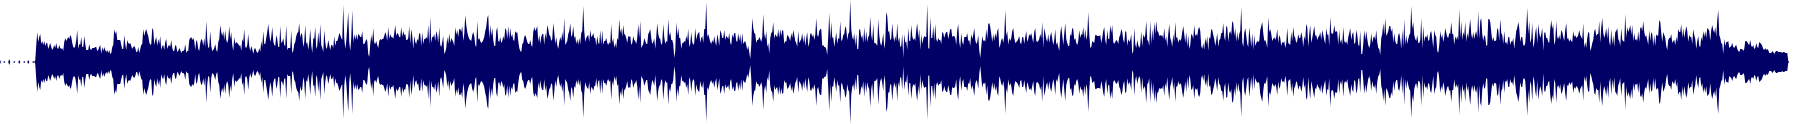 waveform of track #66853